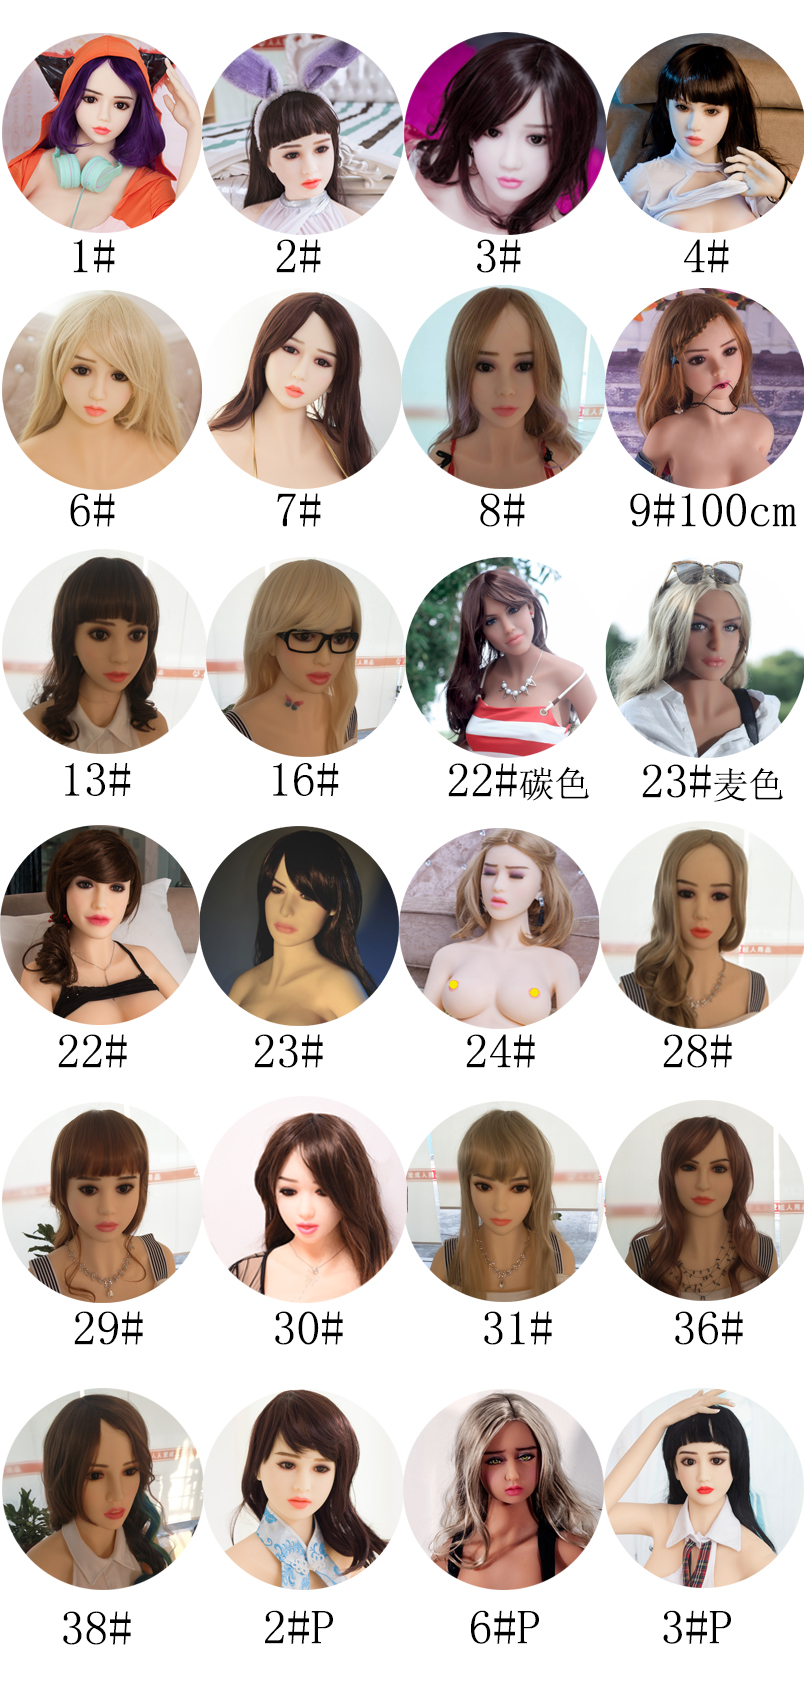 Plus Size Sex Fat Dolls 165cm Silicone Fat Sex Dolls On Sale Alibaba Express Shipping